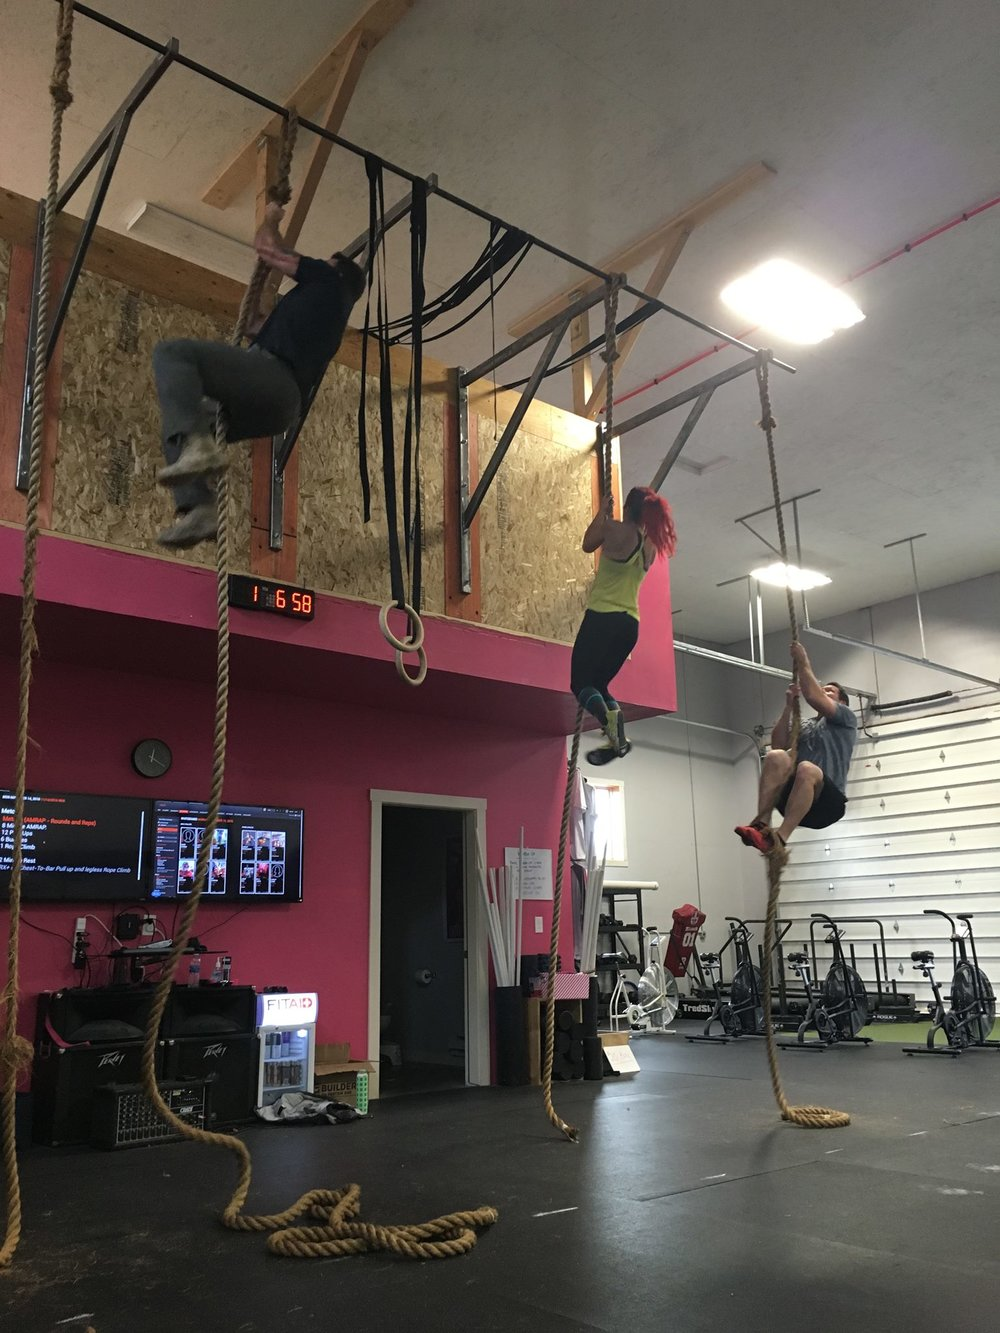 Rope climbs today - bring your socks!